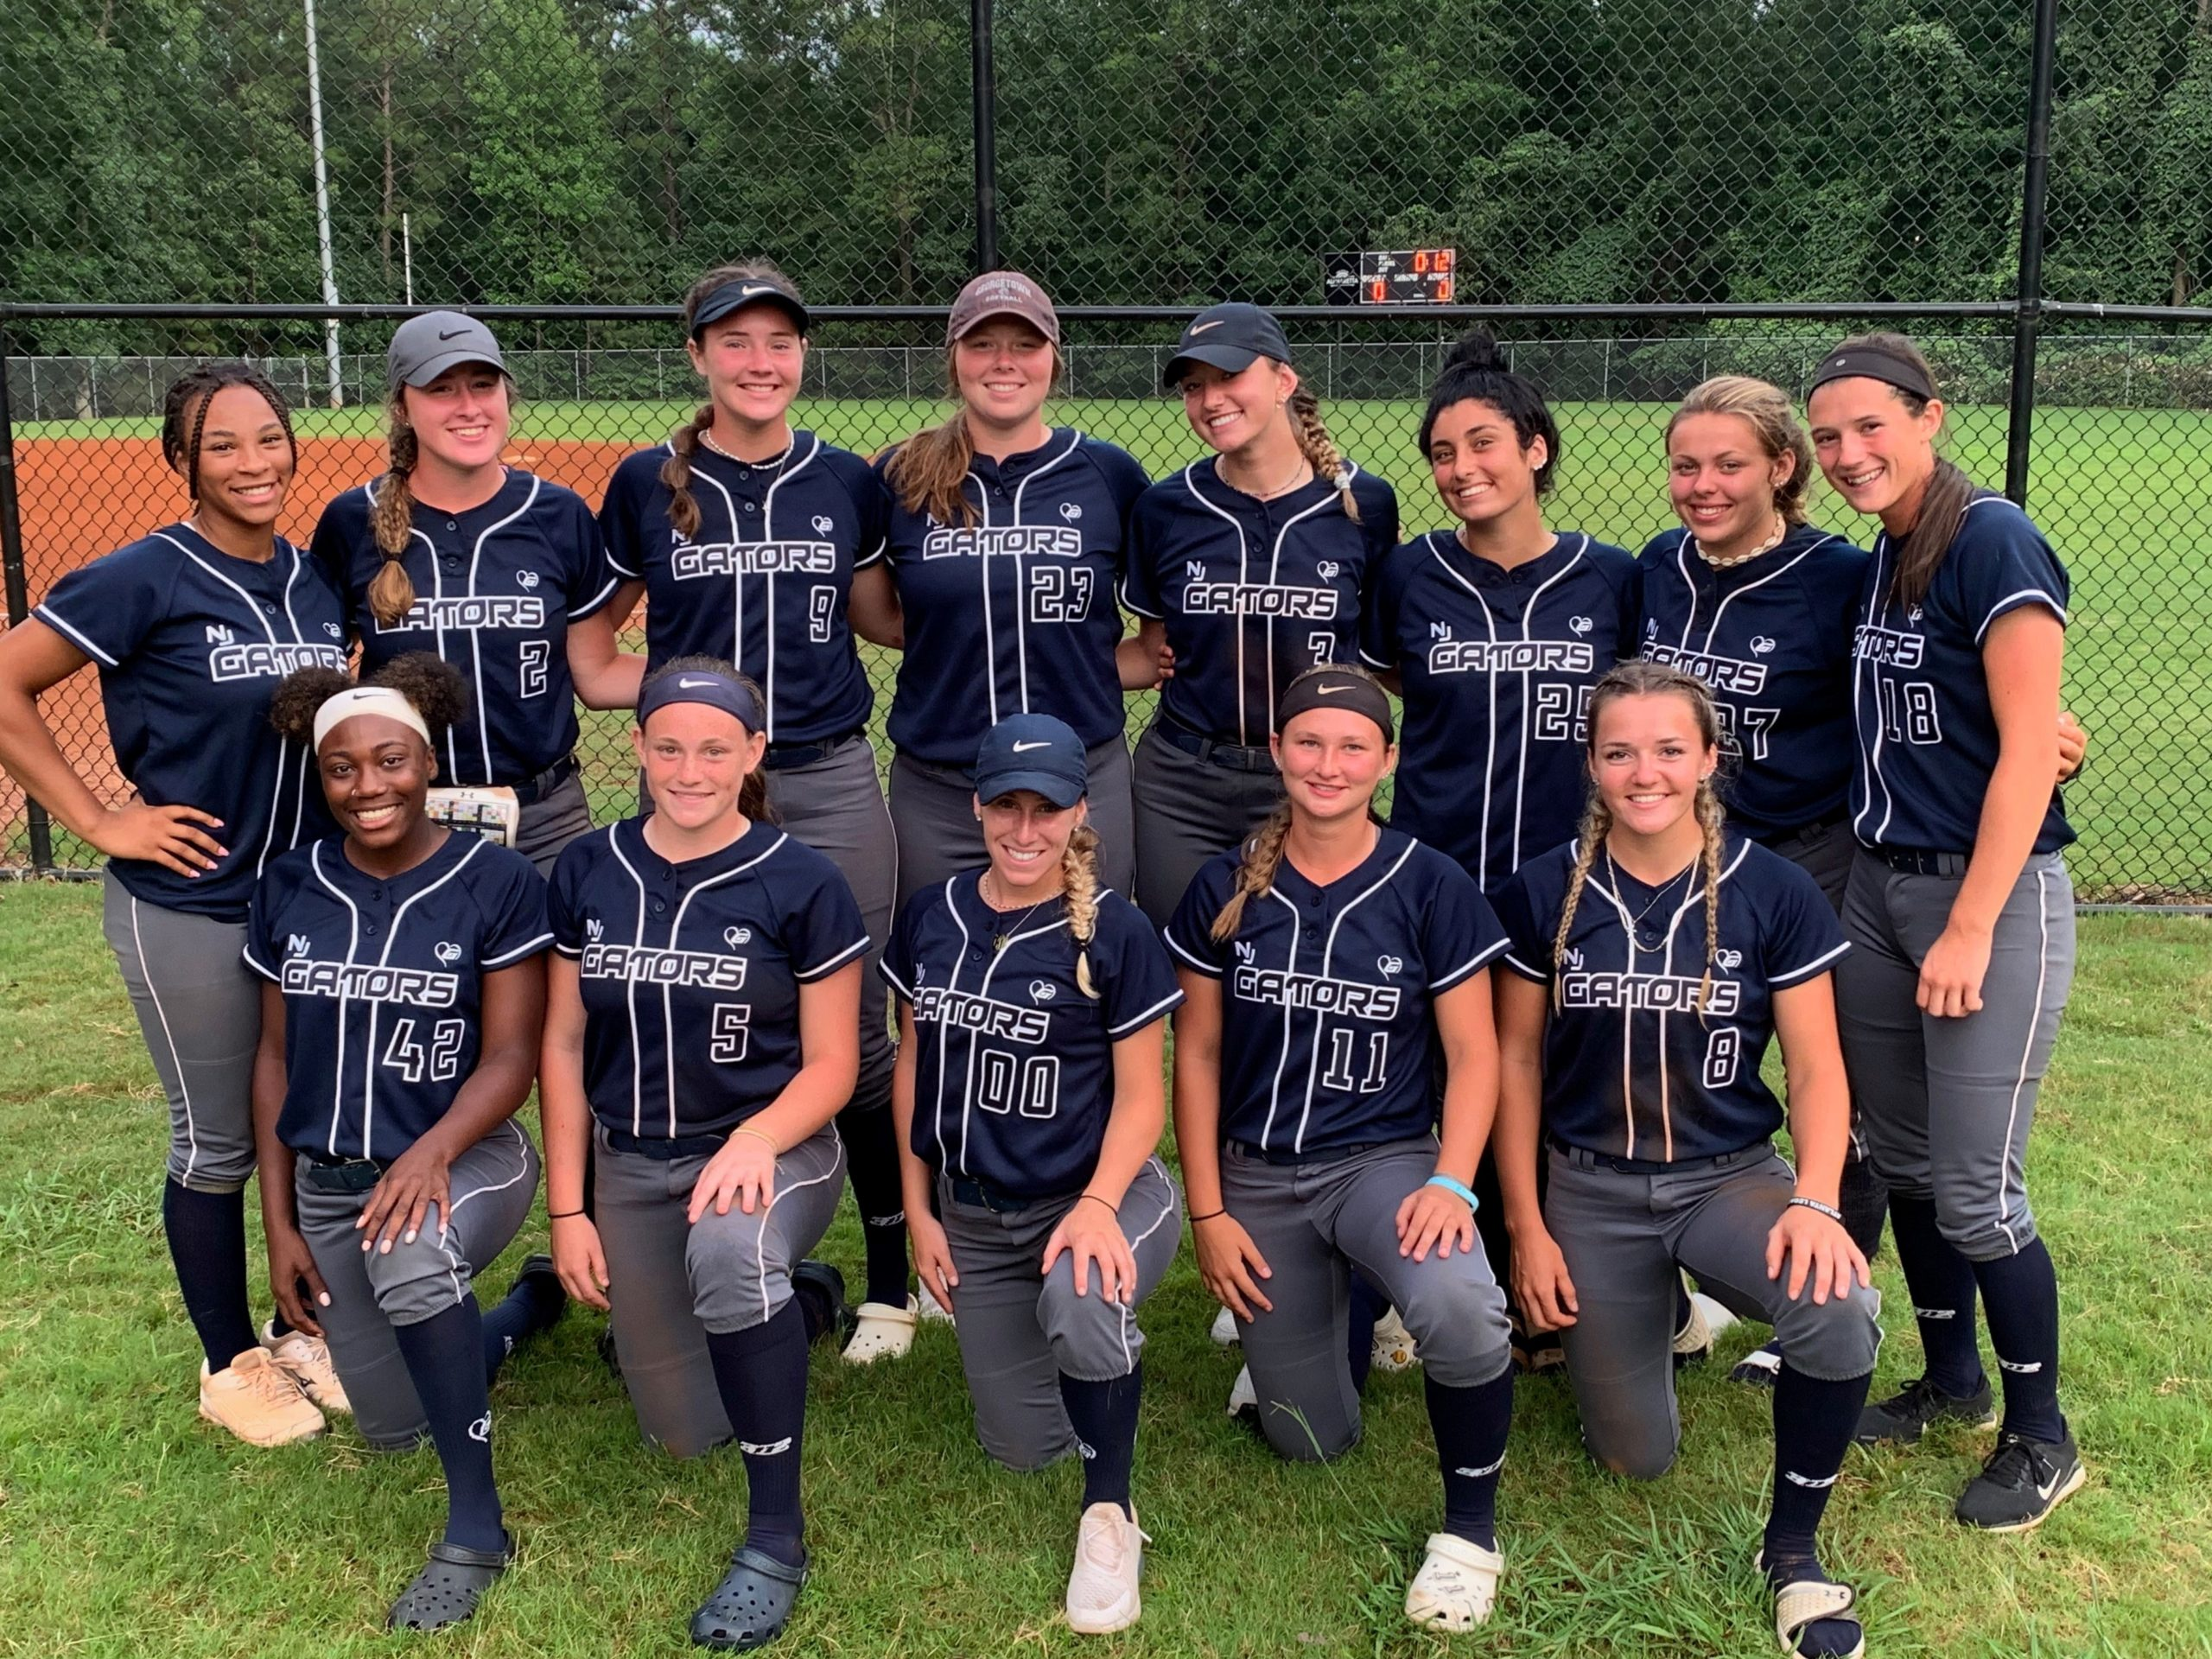 2019 Triple Crown 18u USA National Championship - 9th Place Finish